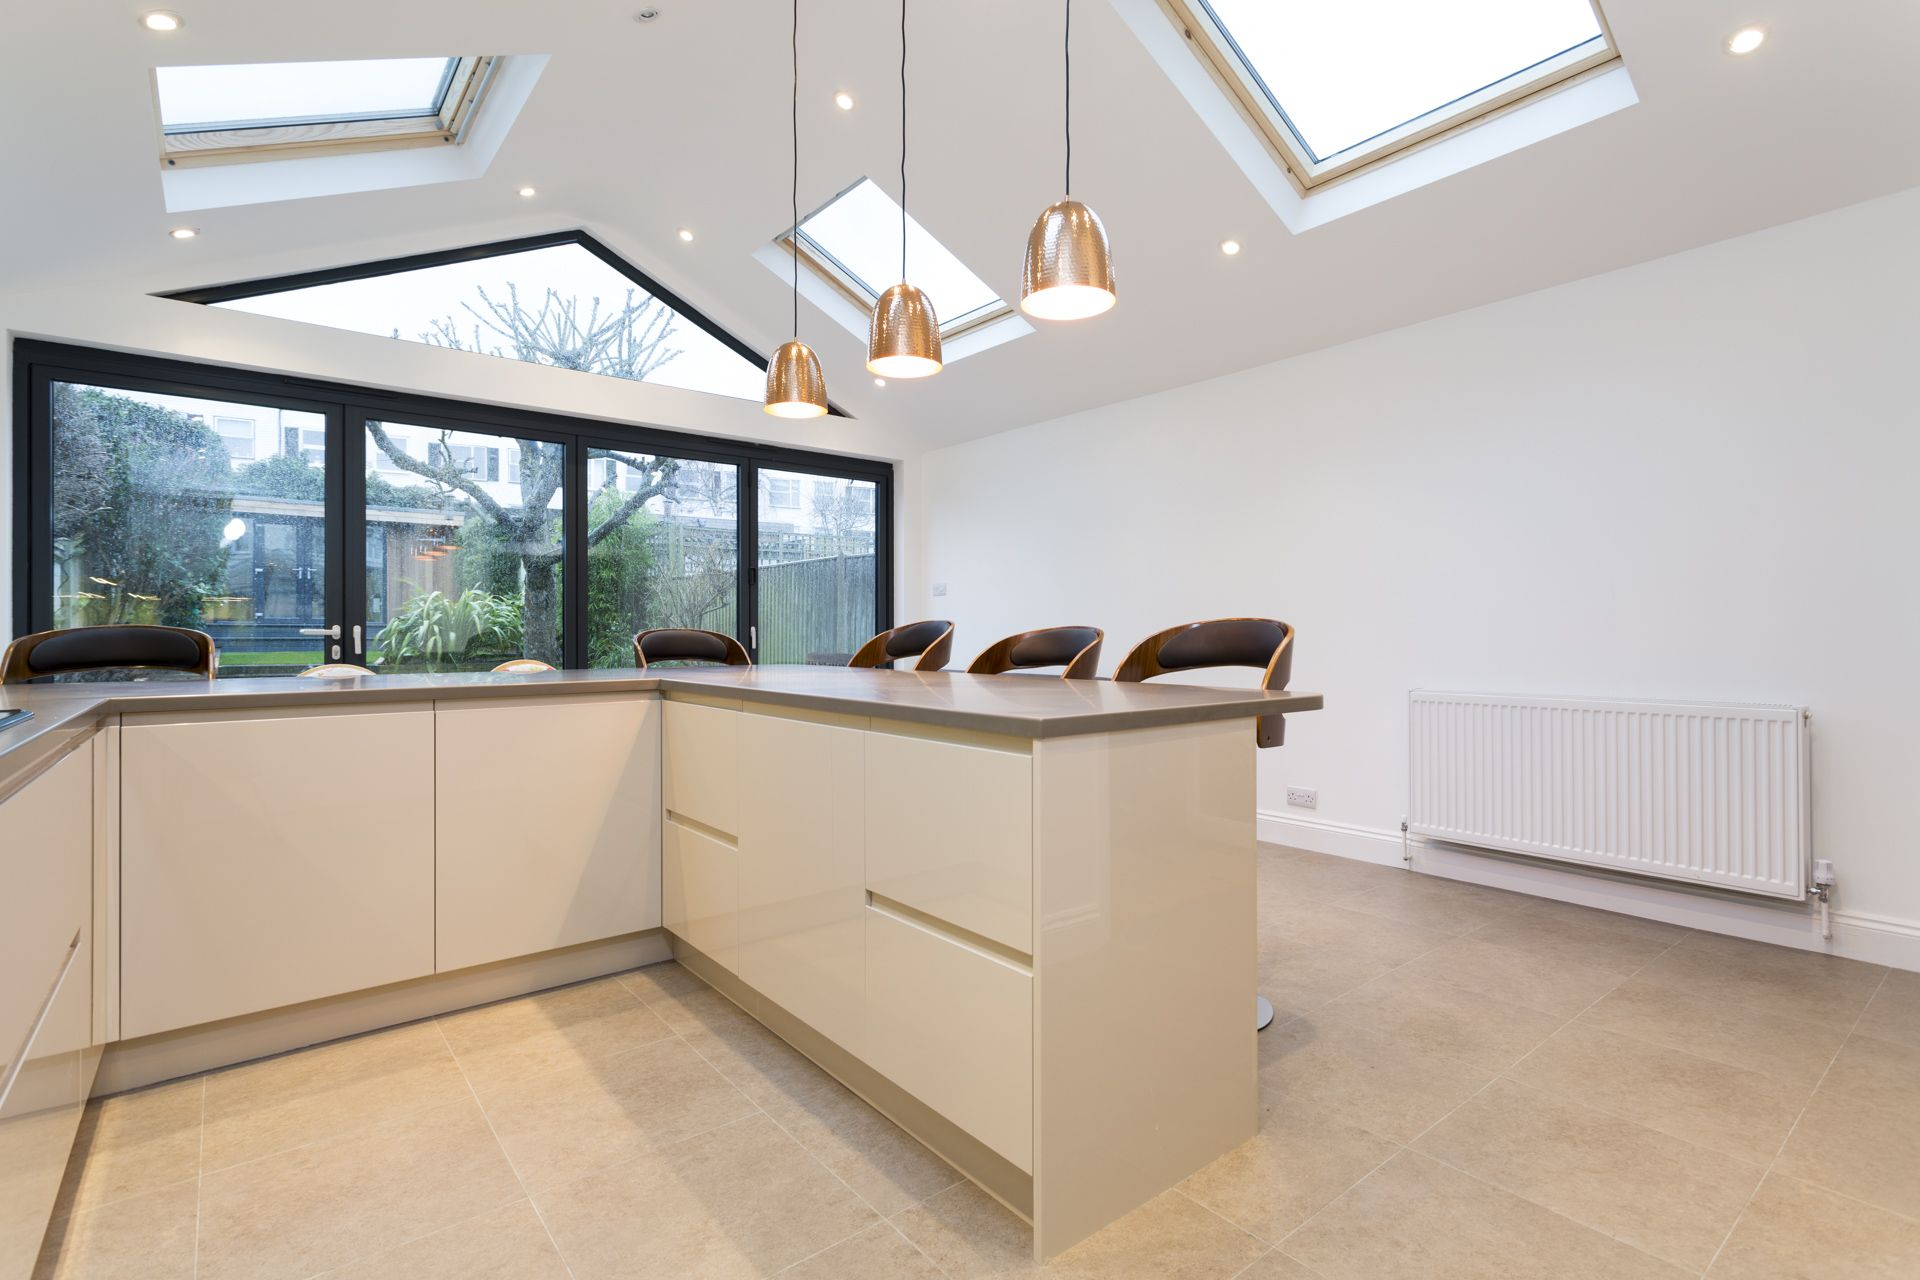 Gable Roof Kitchen Extension, South West London | Simply Extend ...